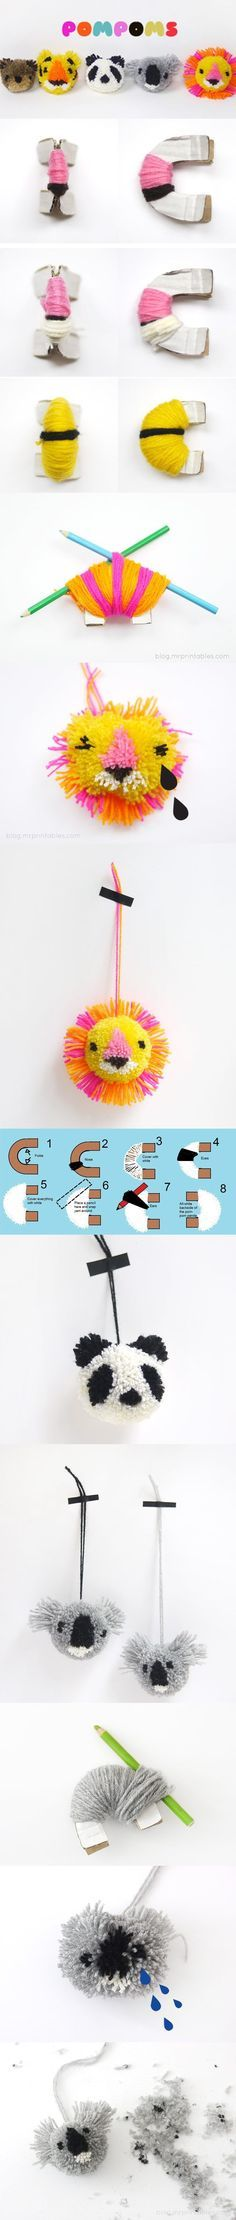 Pom Pom Ideas and Inspiration – pompons mode et animaux Kids Crafts, Cute Crafts, Hobbies And Crafts, Diy And Crafts, Craft Projects, Arts And Crafts, Decor Crafts, Pom Pom Crafts, Yarn Crafts